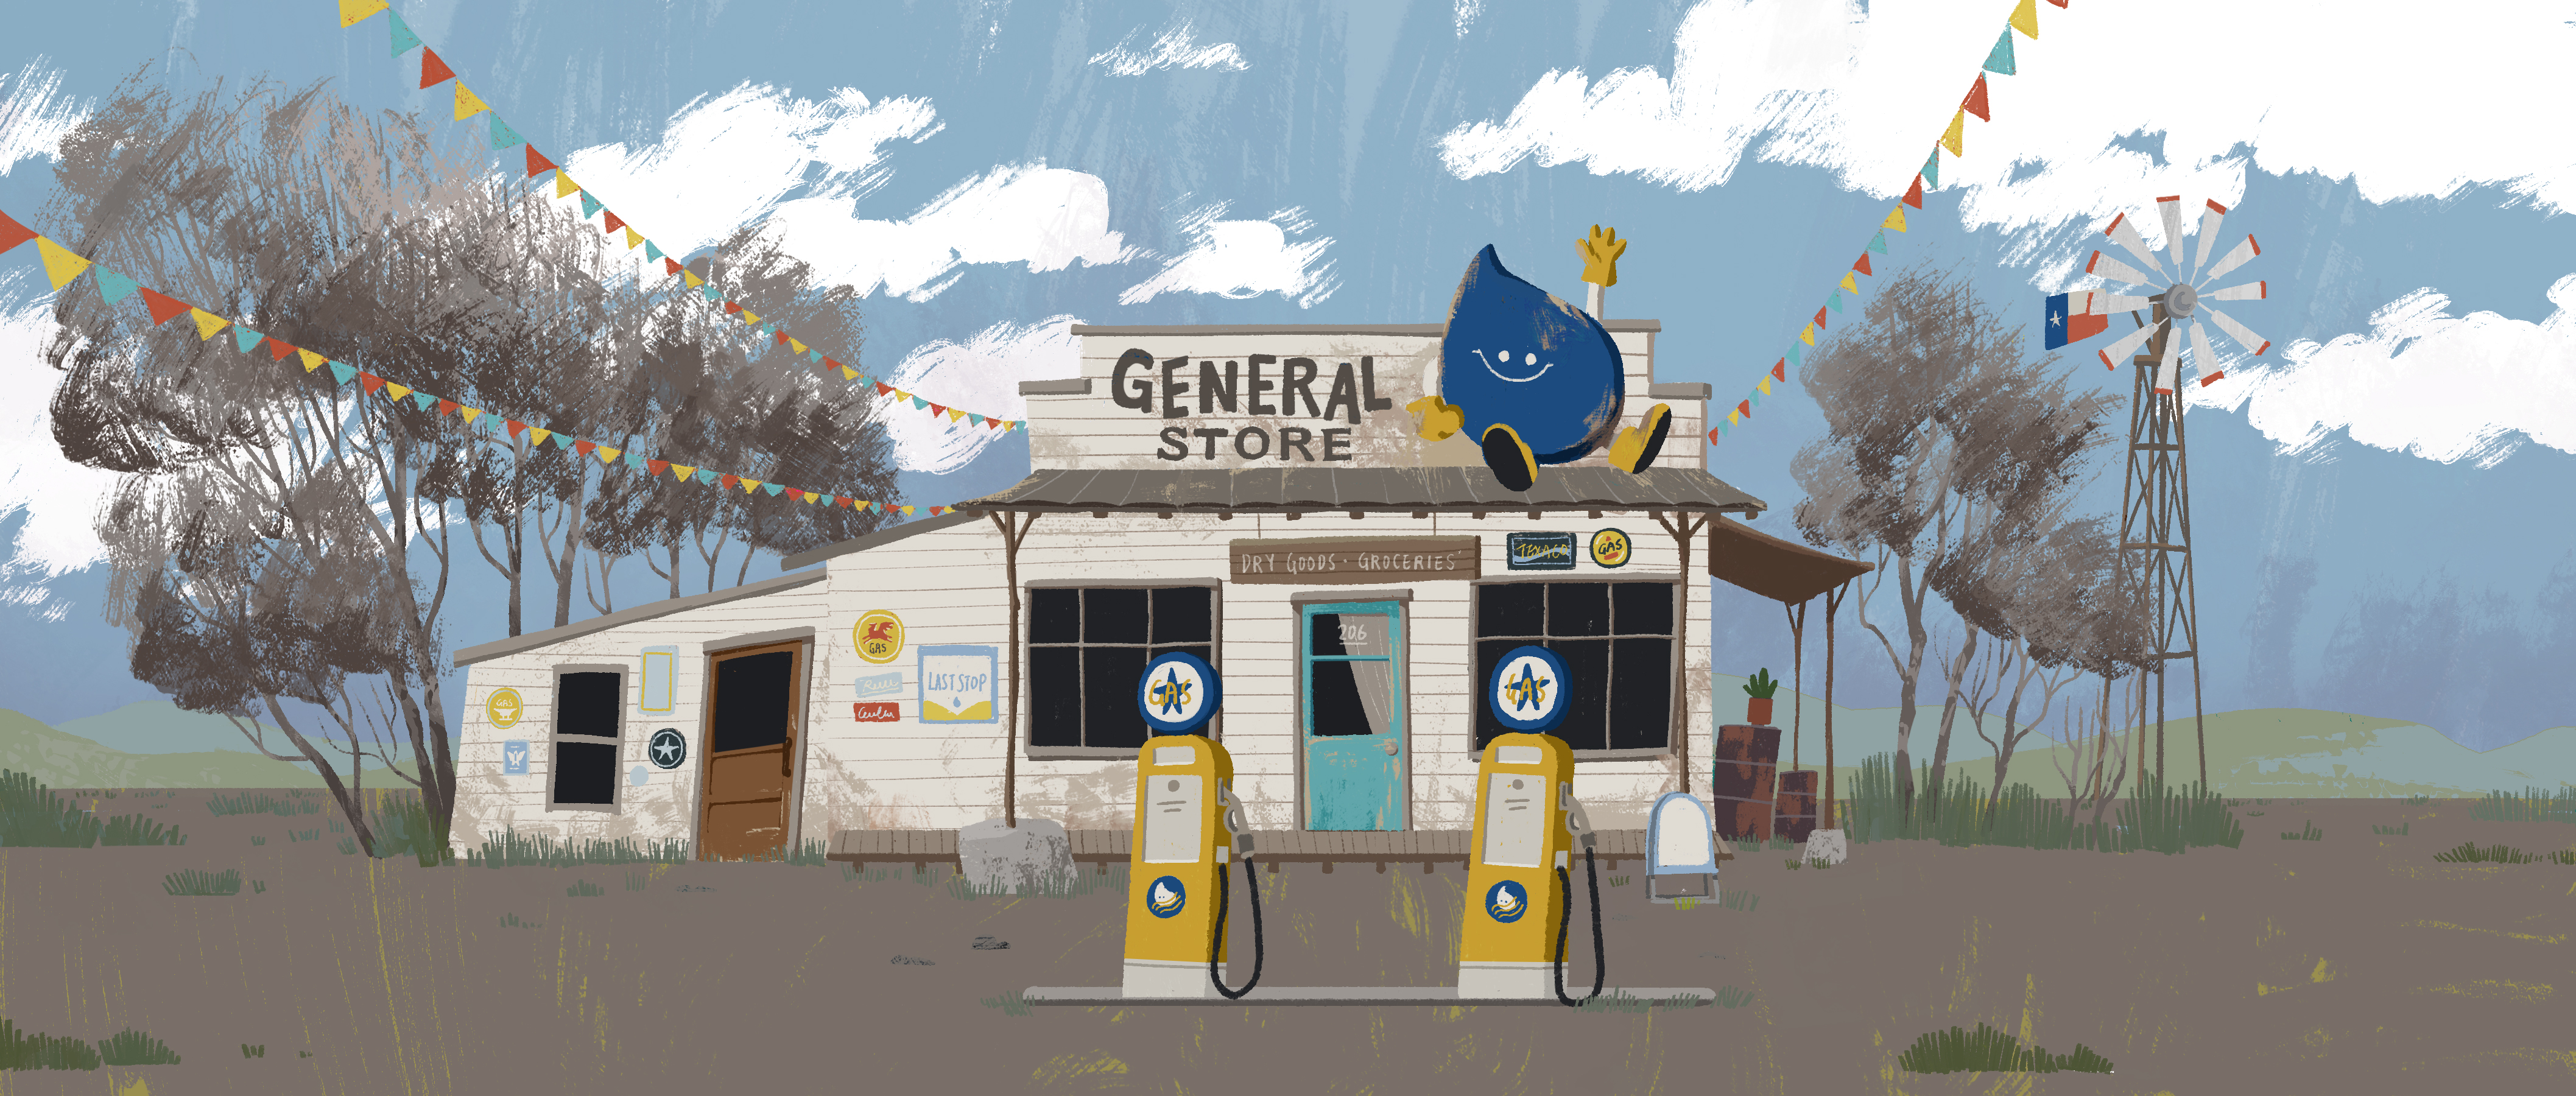 S_gas_station_3_2